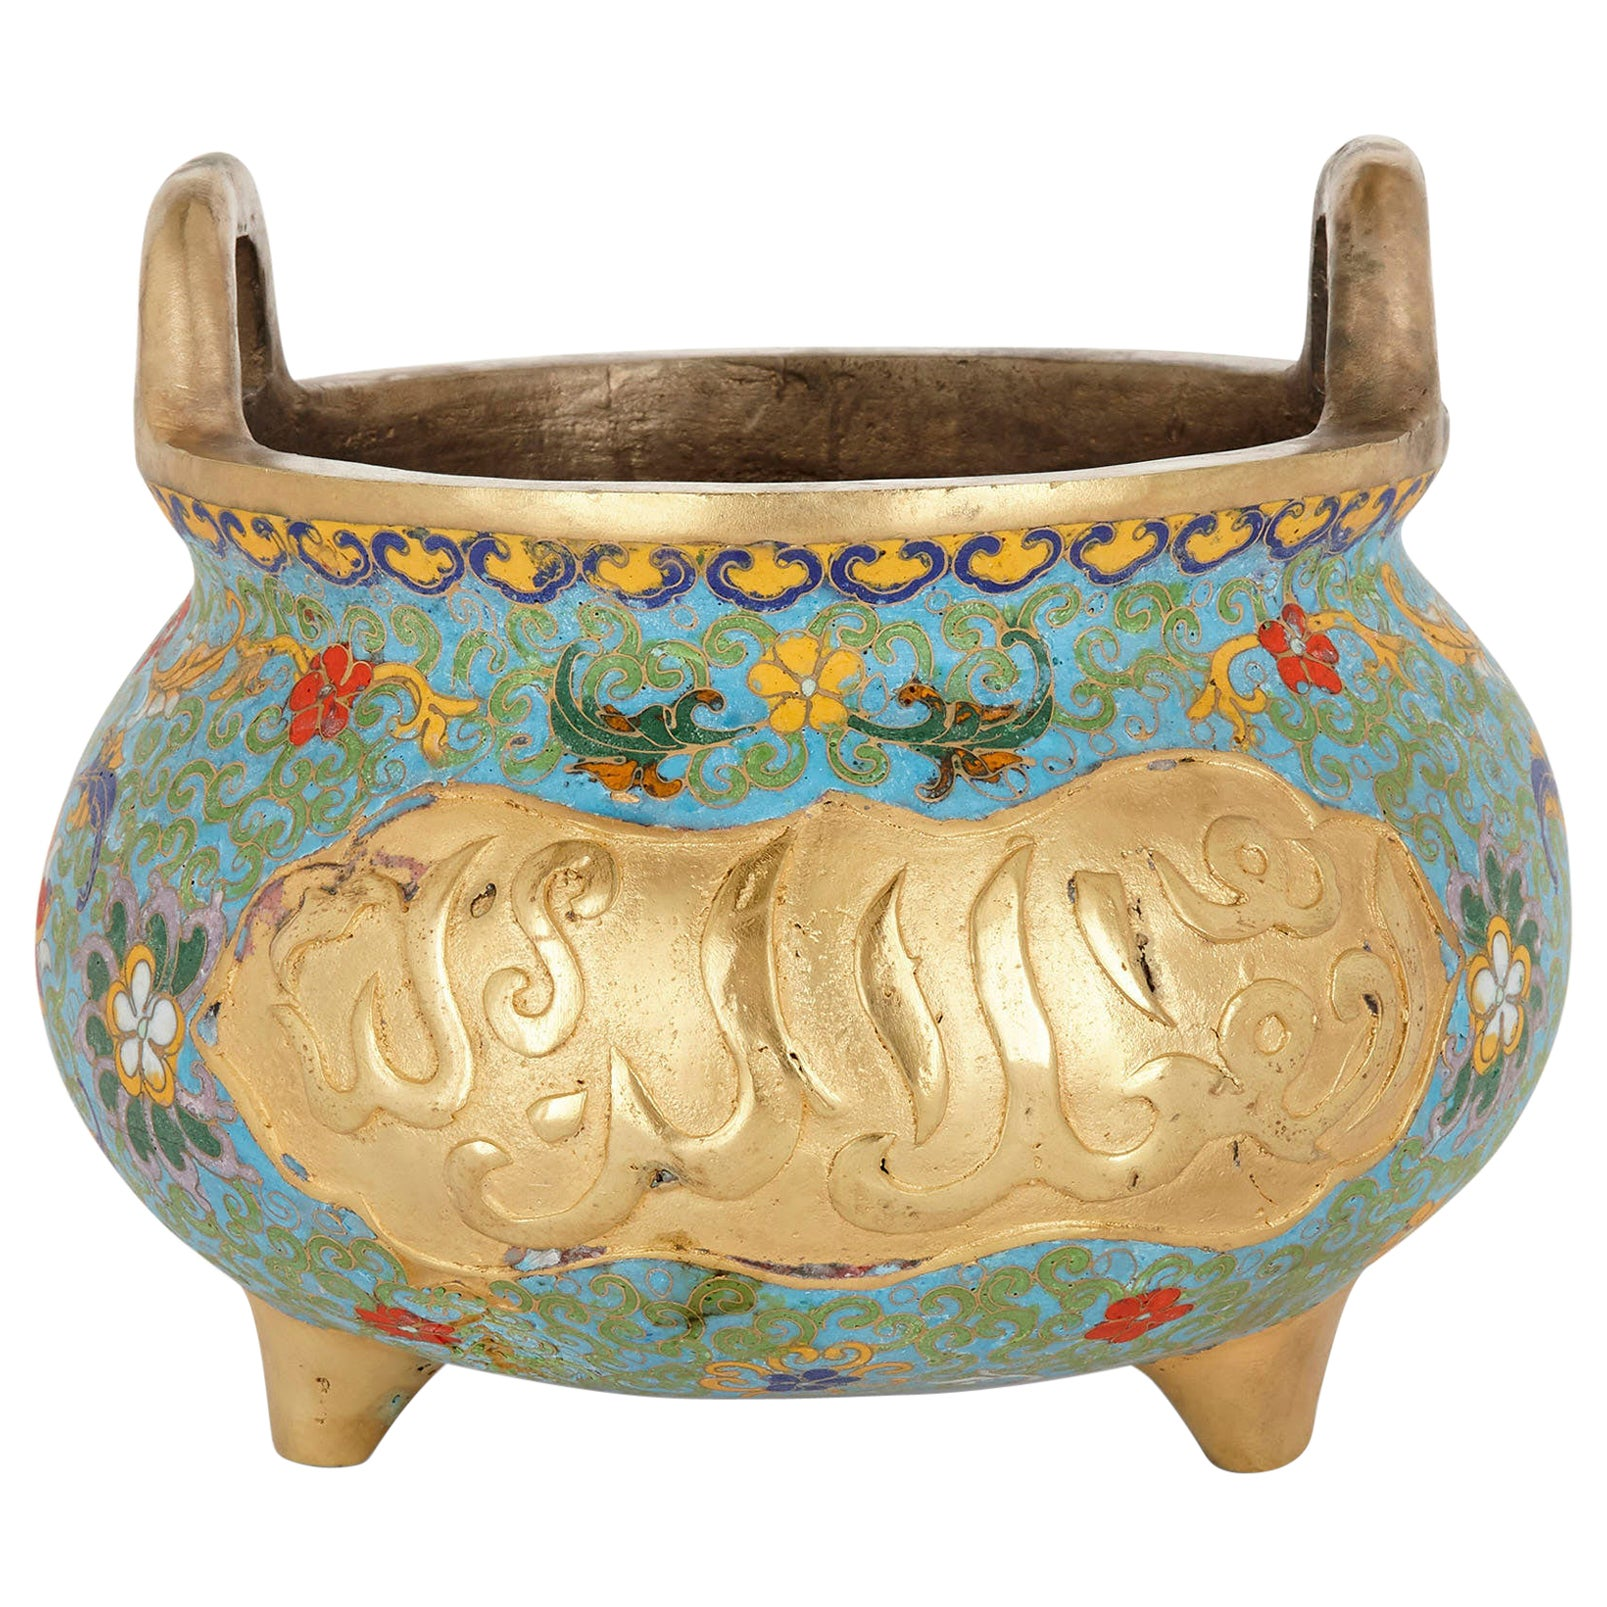 Chinese Floral Cloisonné Enamel and Ormolu Vase for Islamic Market